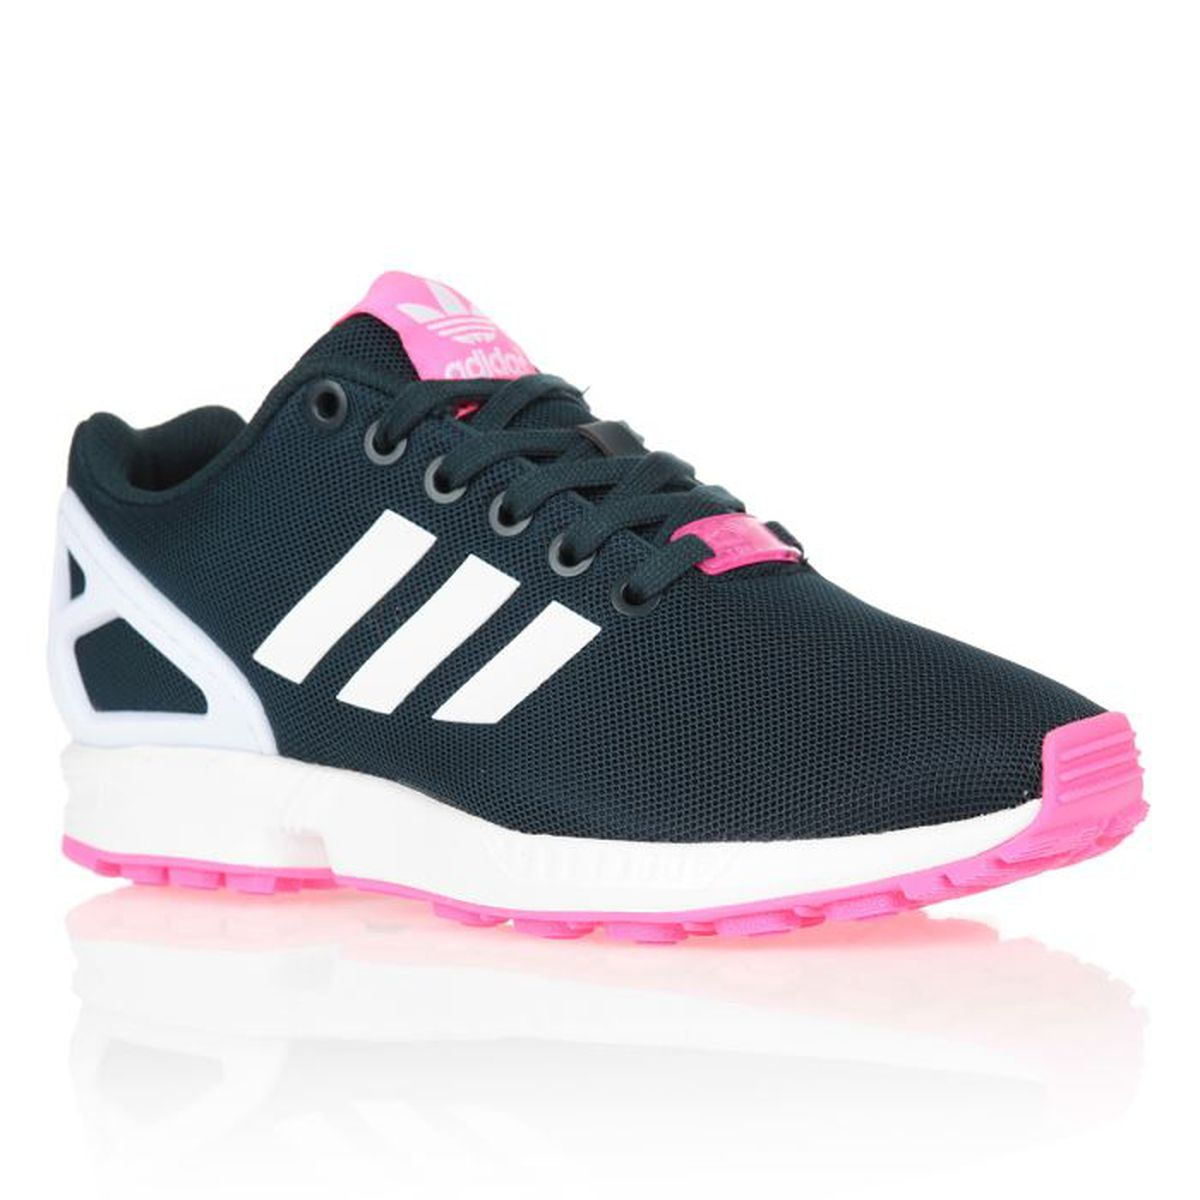 adidas originals baskets zx flux femme femme noir et blanc. Black Bedroom Furniture Sets. Home Design Ideas